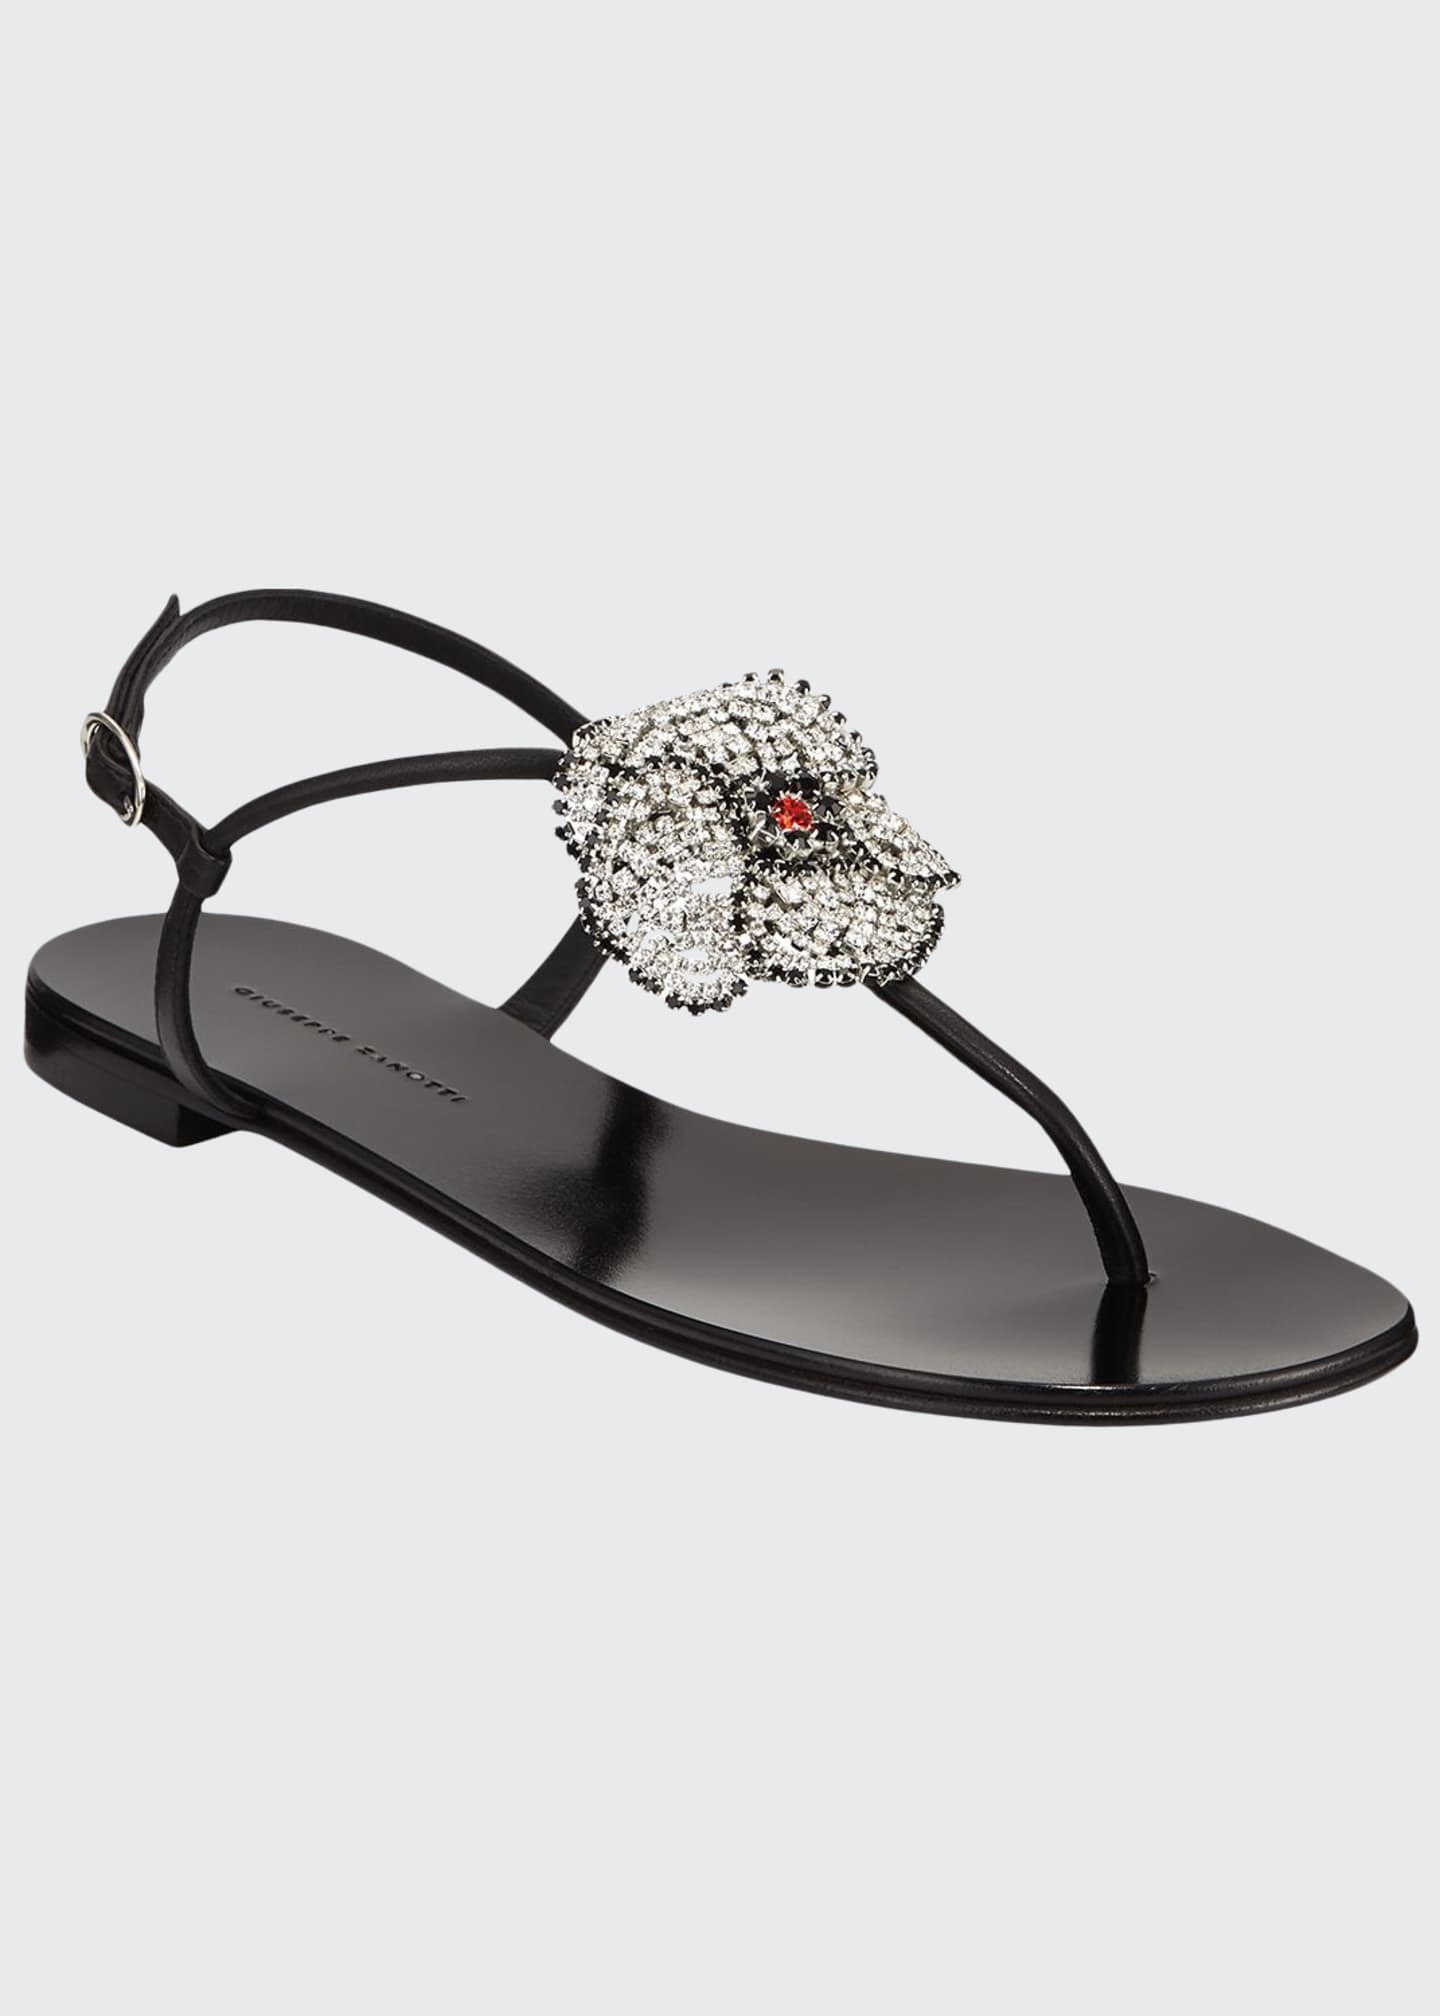 Giuseppe Zanotti Flat Thong Sandals with Crystal Flower